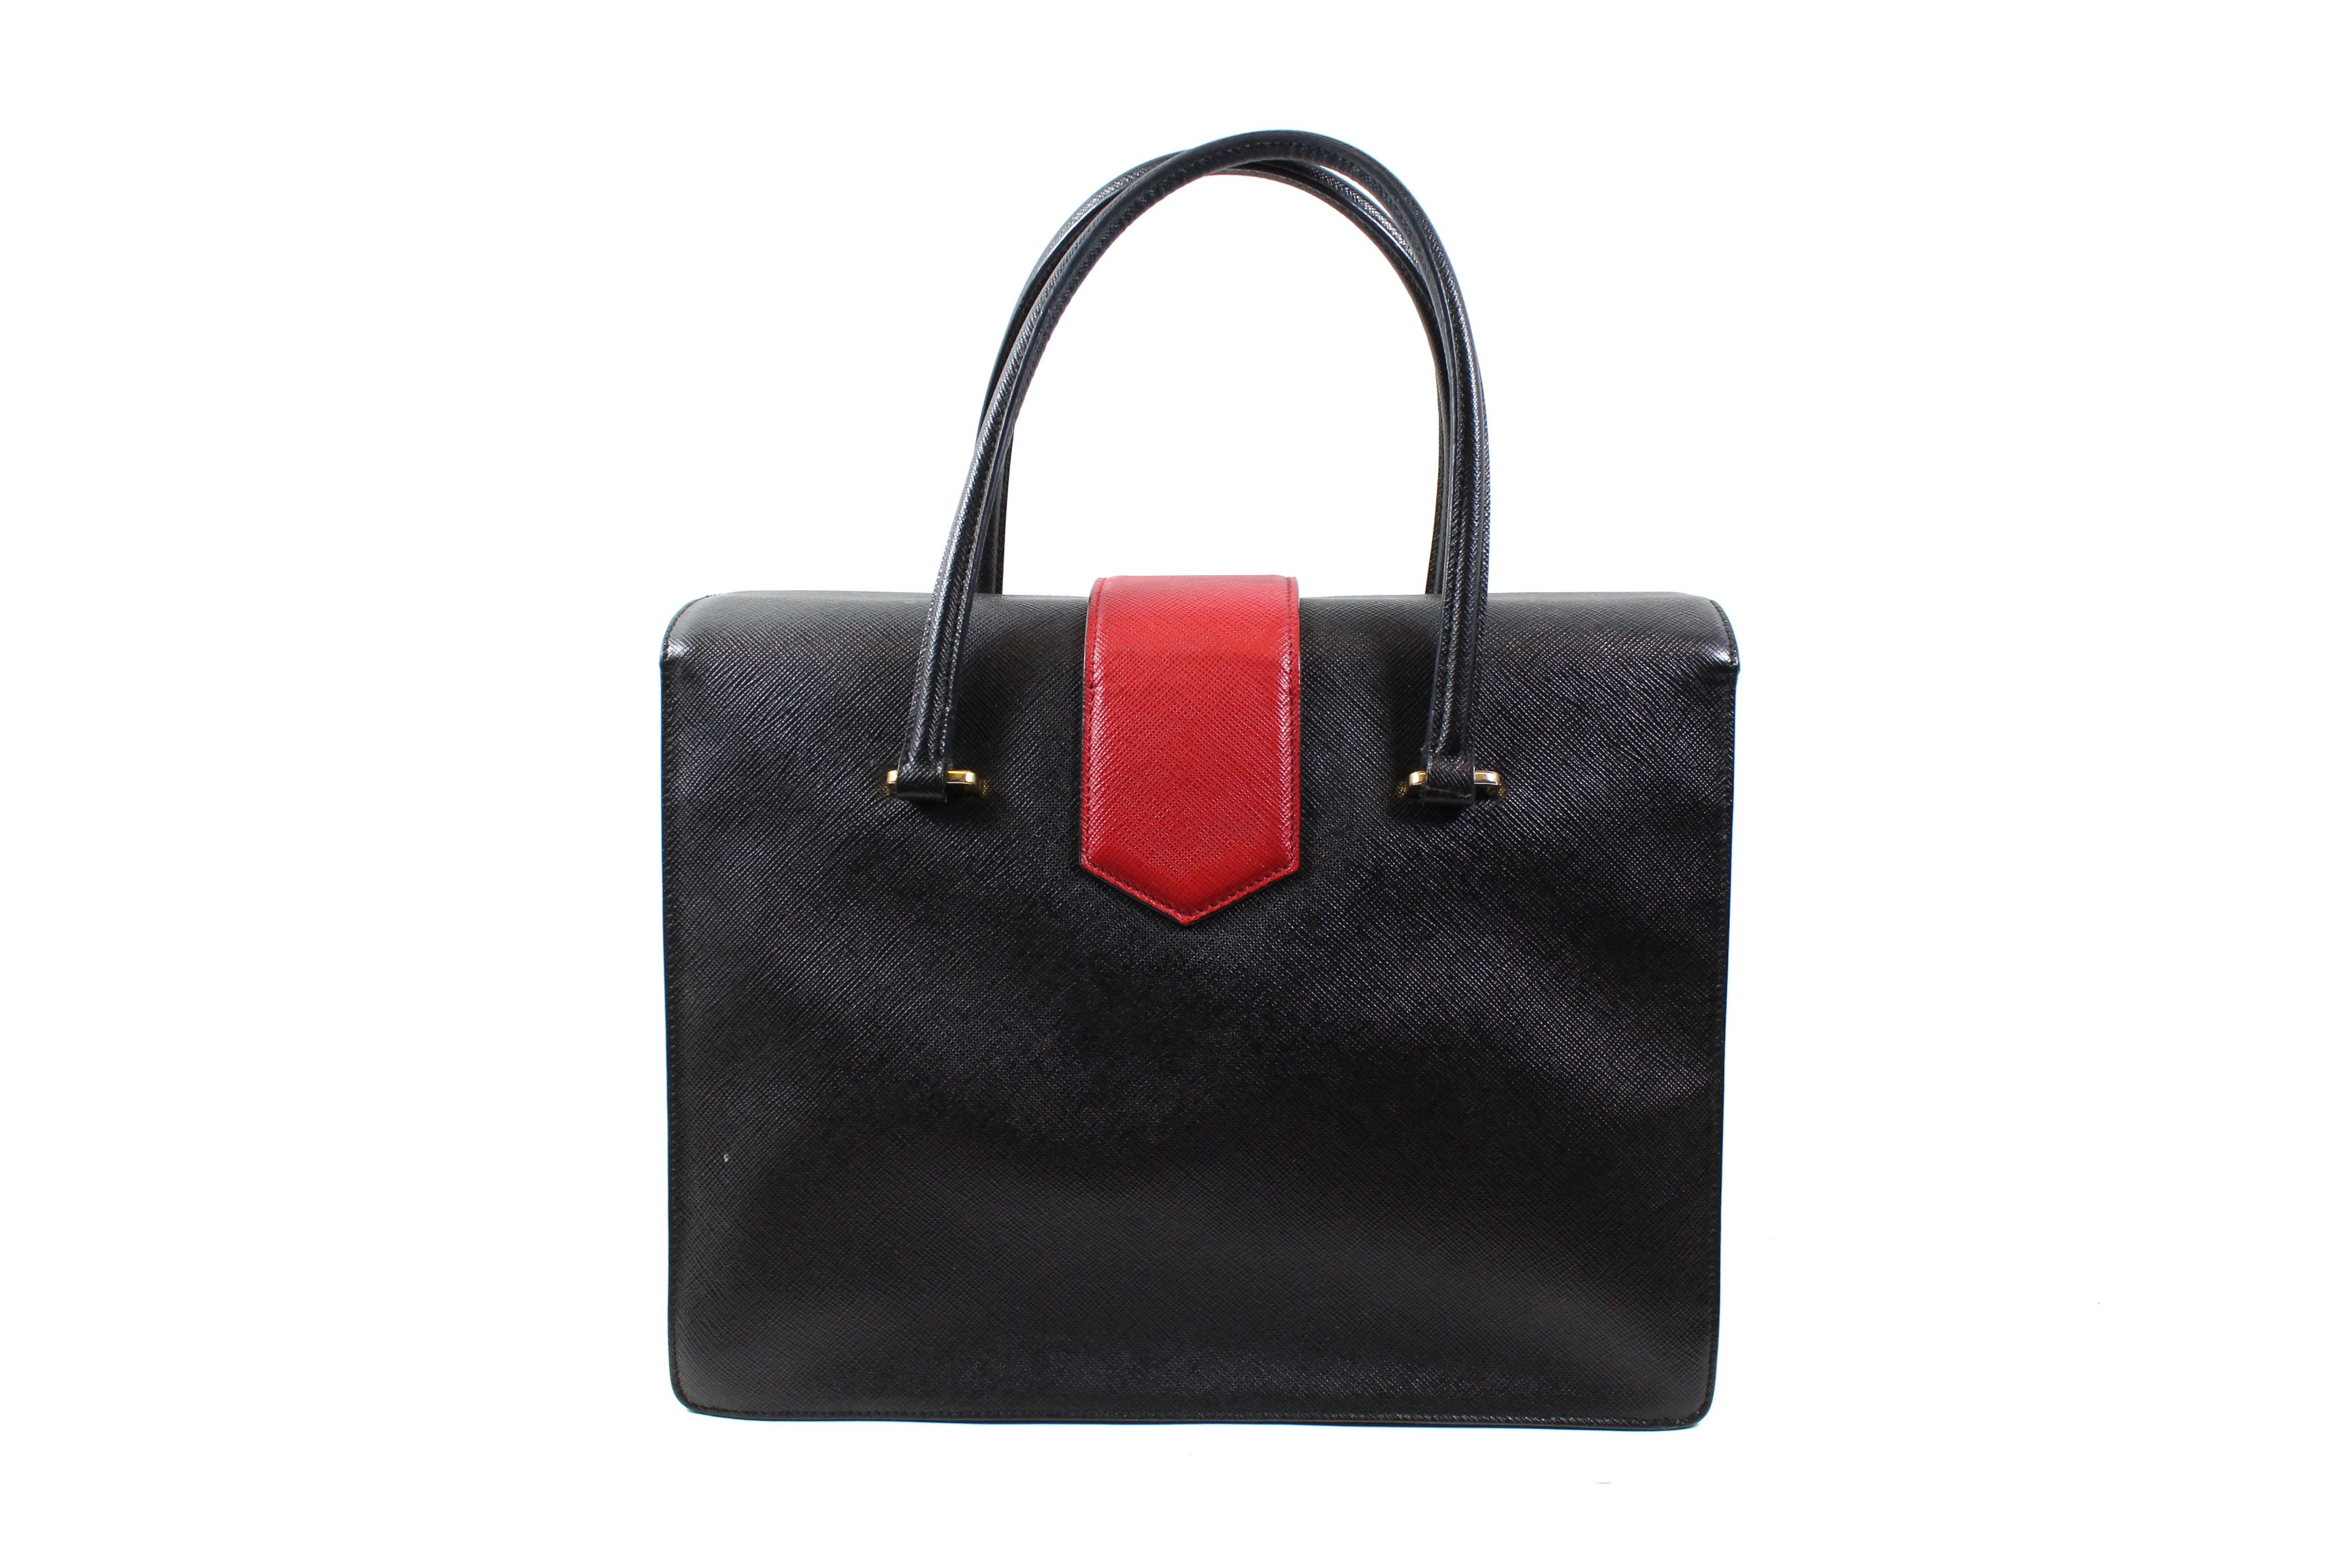 3f9f41f3ed33 Prada Black White Red Saffiano Leather Gusseted Handbag – Encore Resale.com